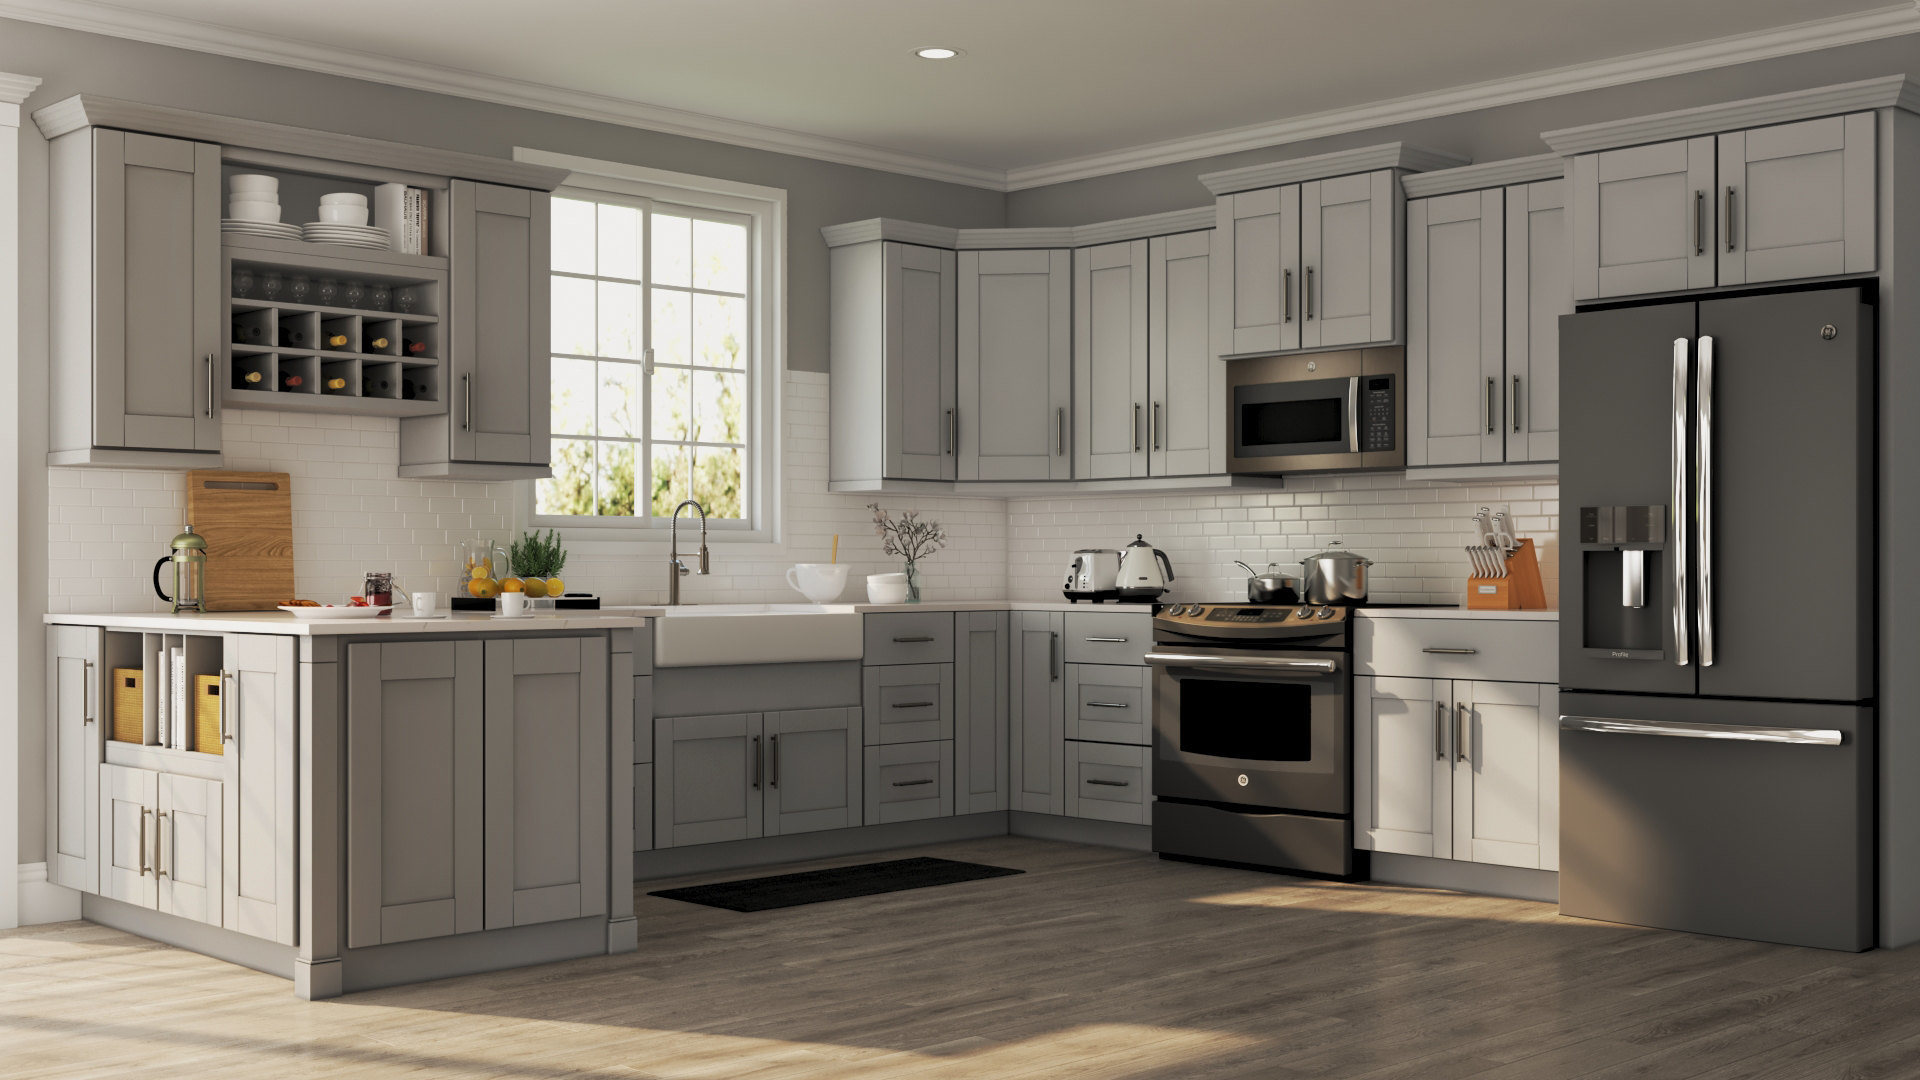 Kitchen Cabinets Online Design Tool Shaker Base Cabinets In Dove Gray Kitchen The Home Depot